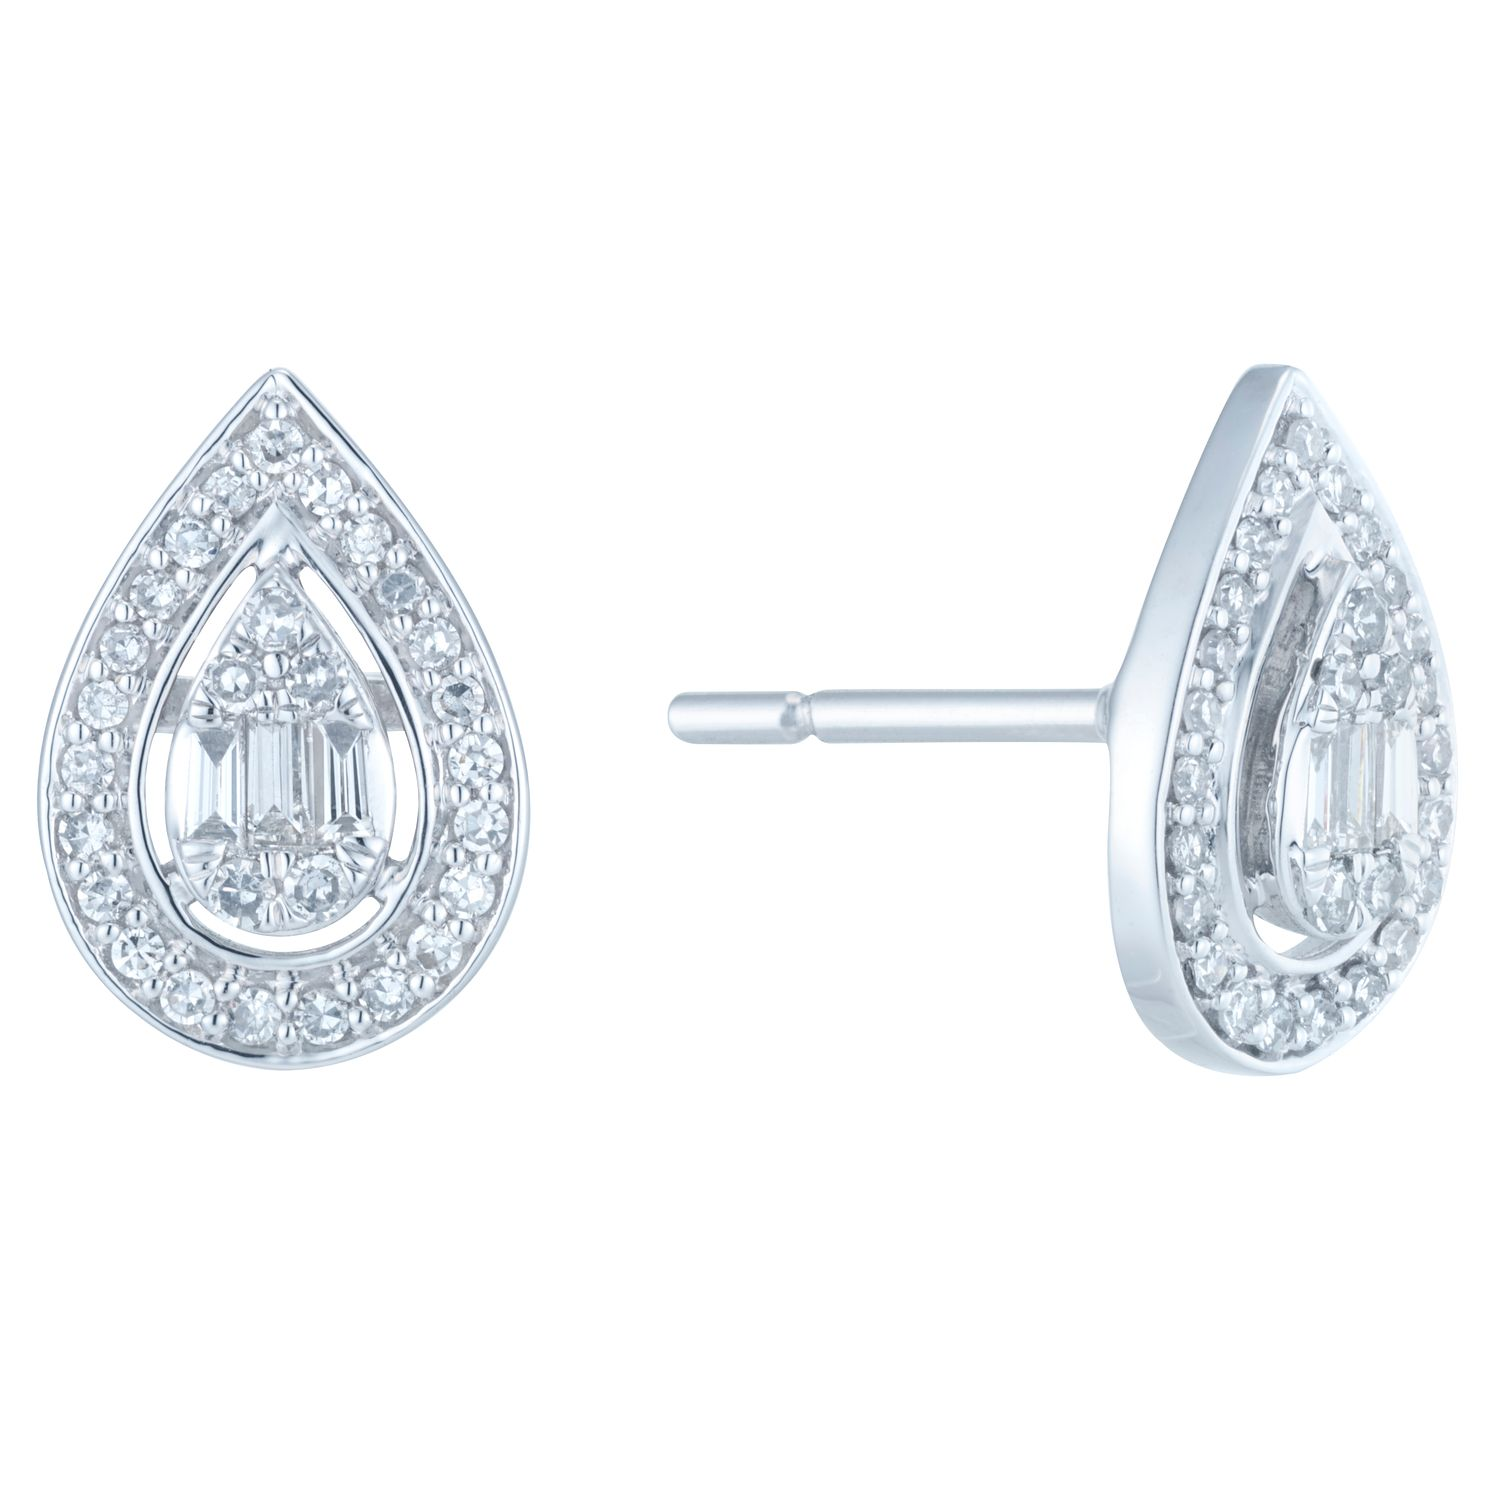 9ct White Gold 0.30ct Total Diamond Earrings - Product number 6420605